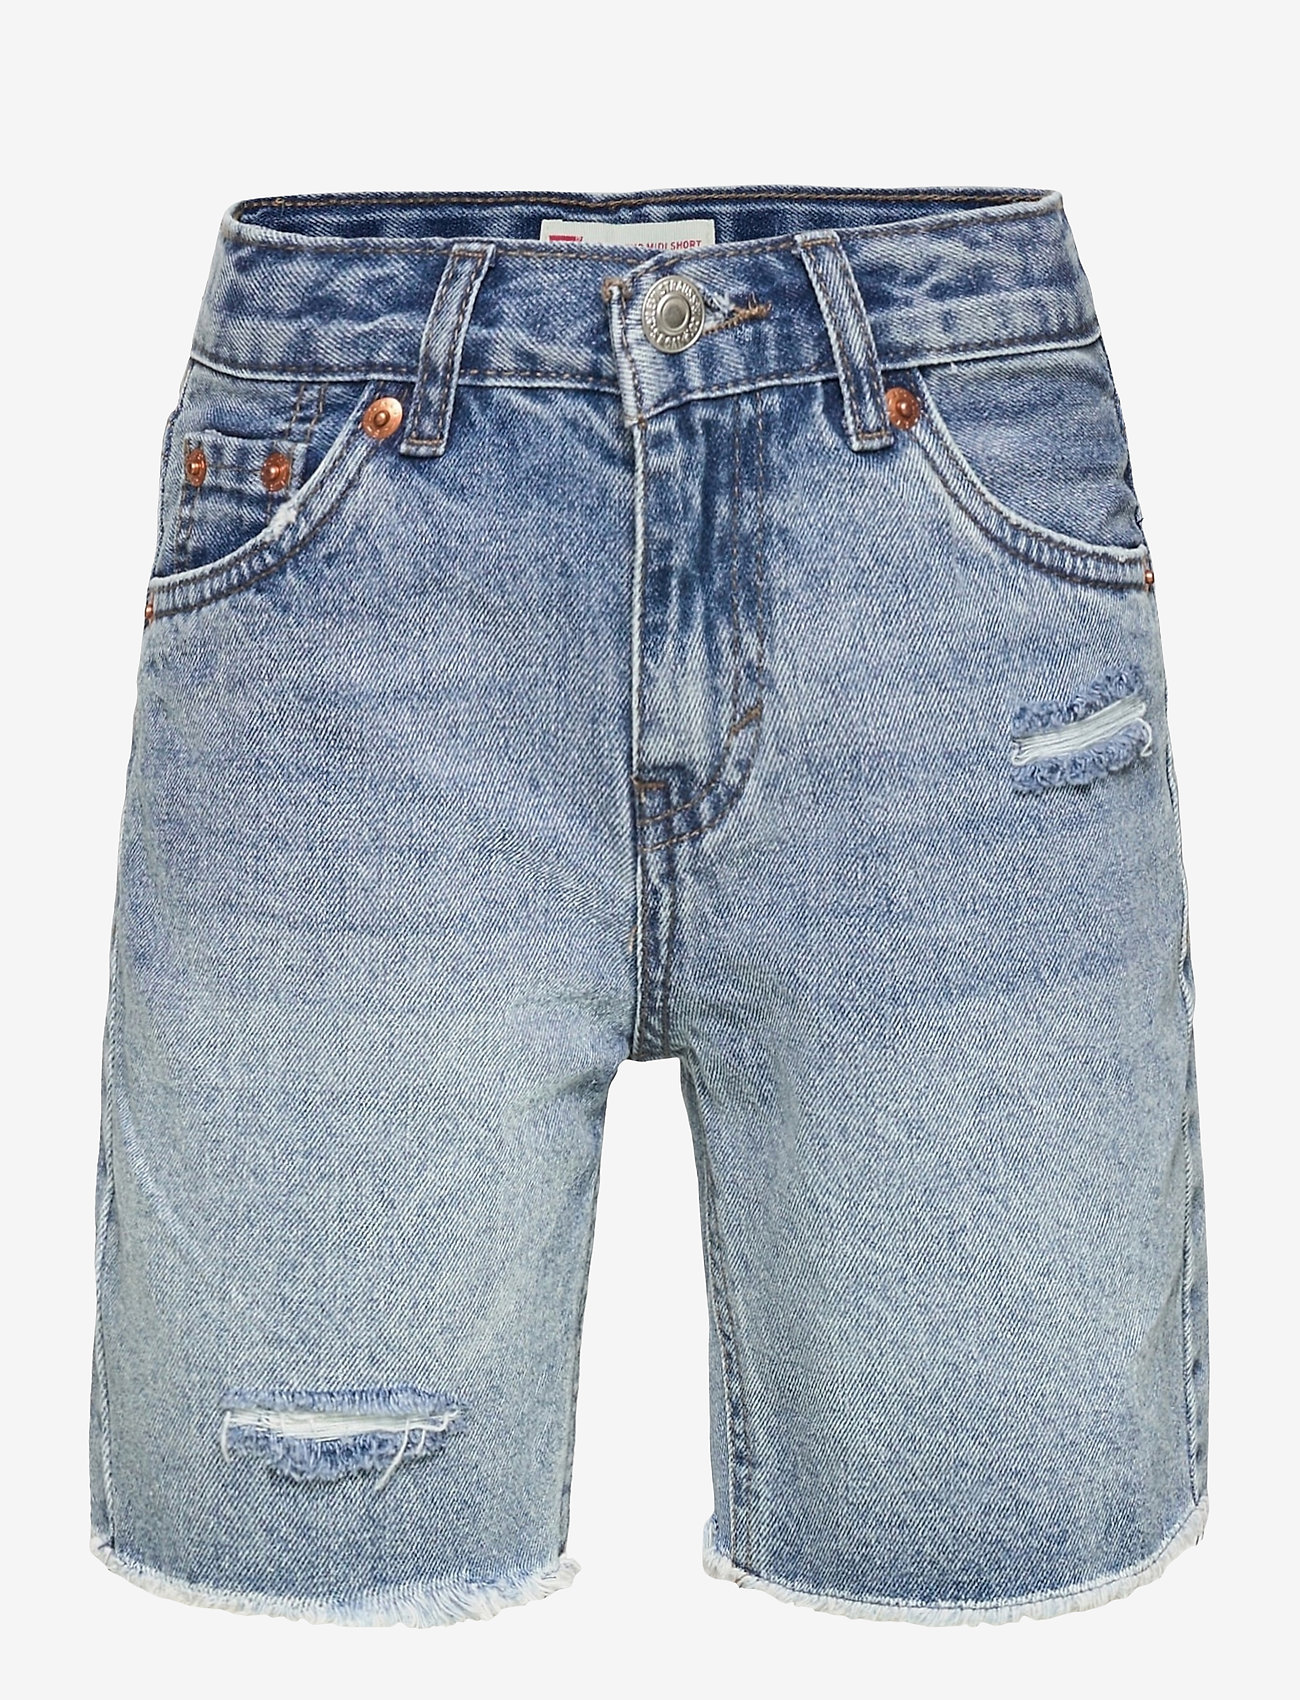 Levis Girl friend Midi Shorts